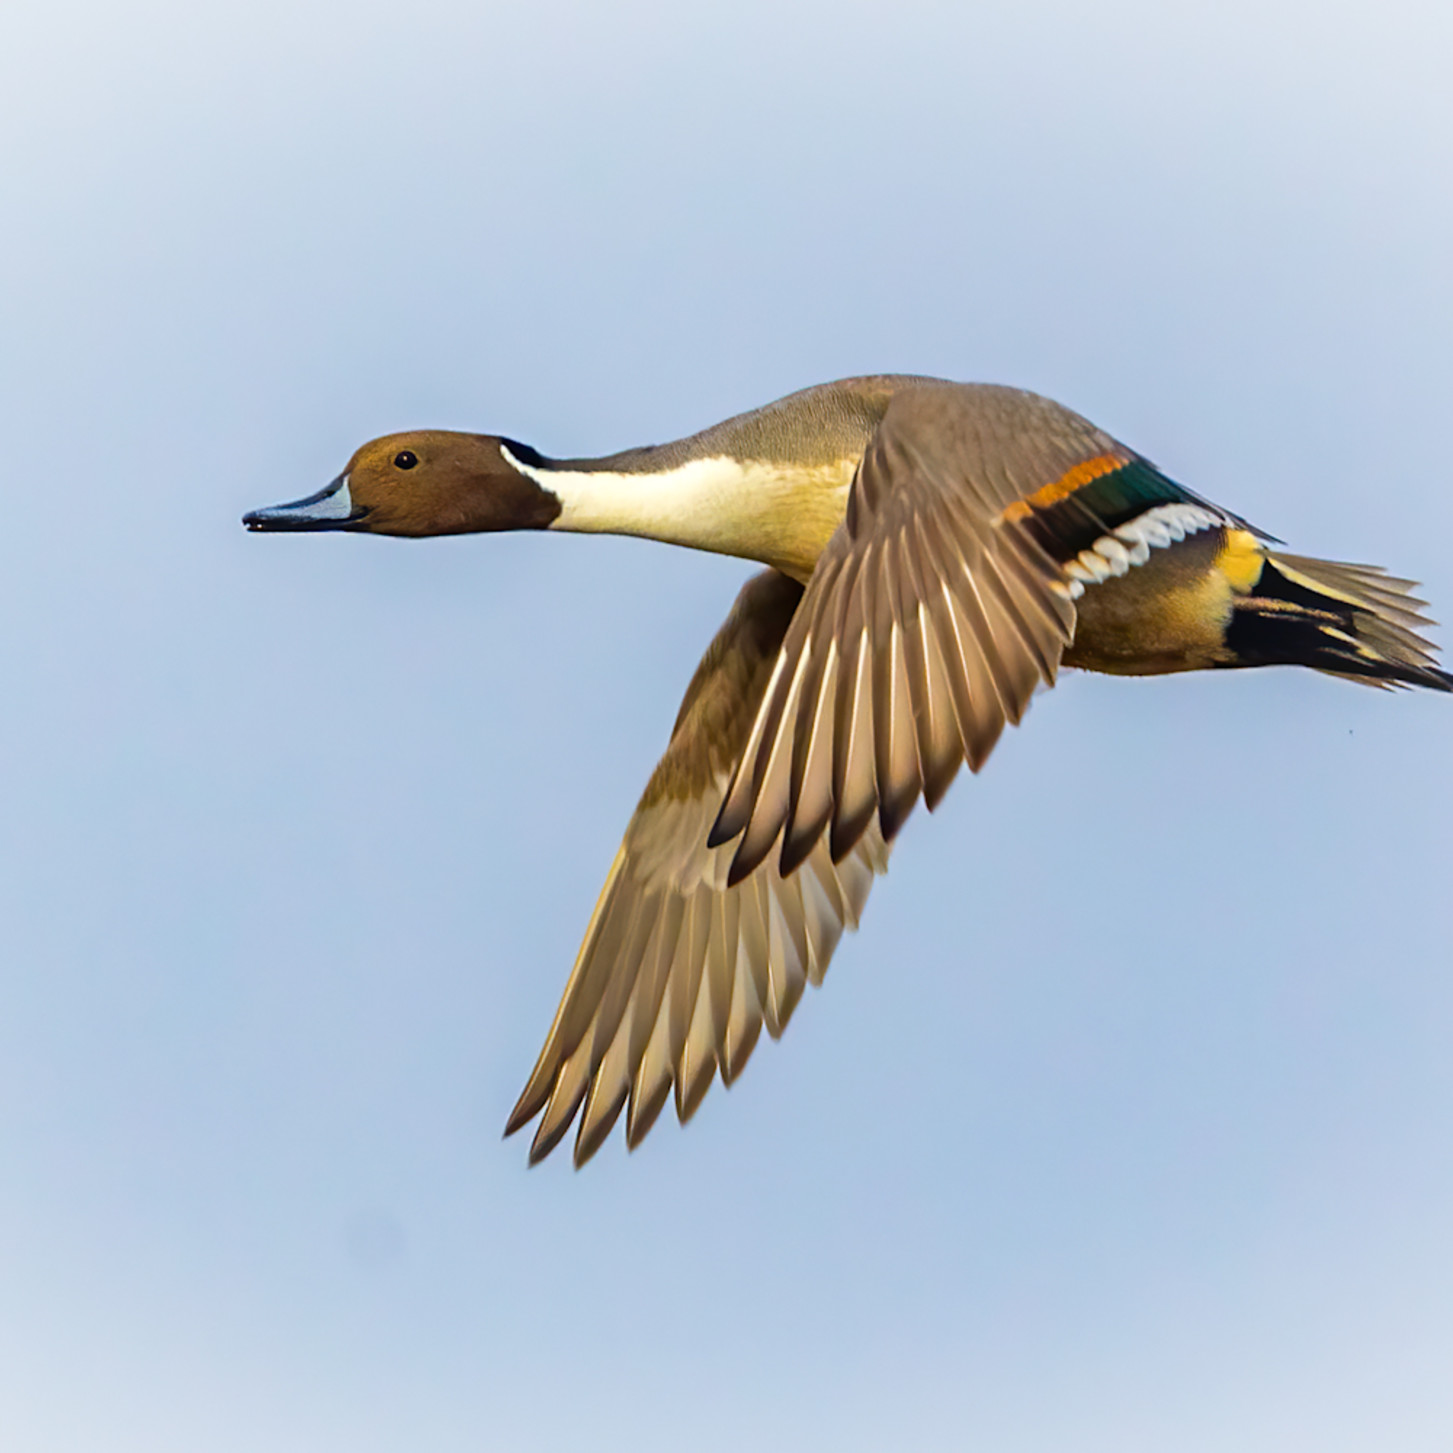 Male northern pintail in flight against blue sky dunsiz